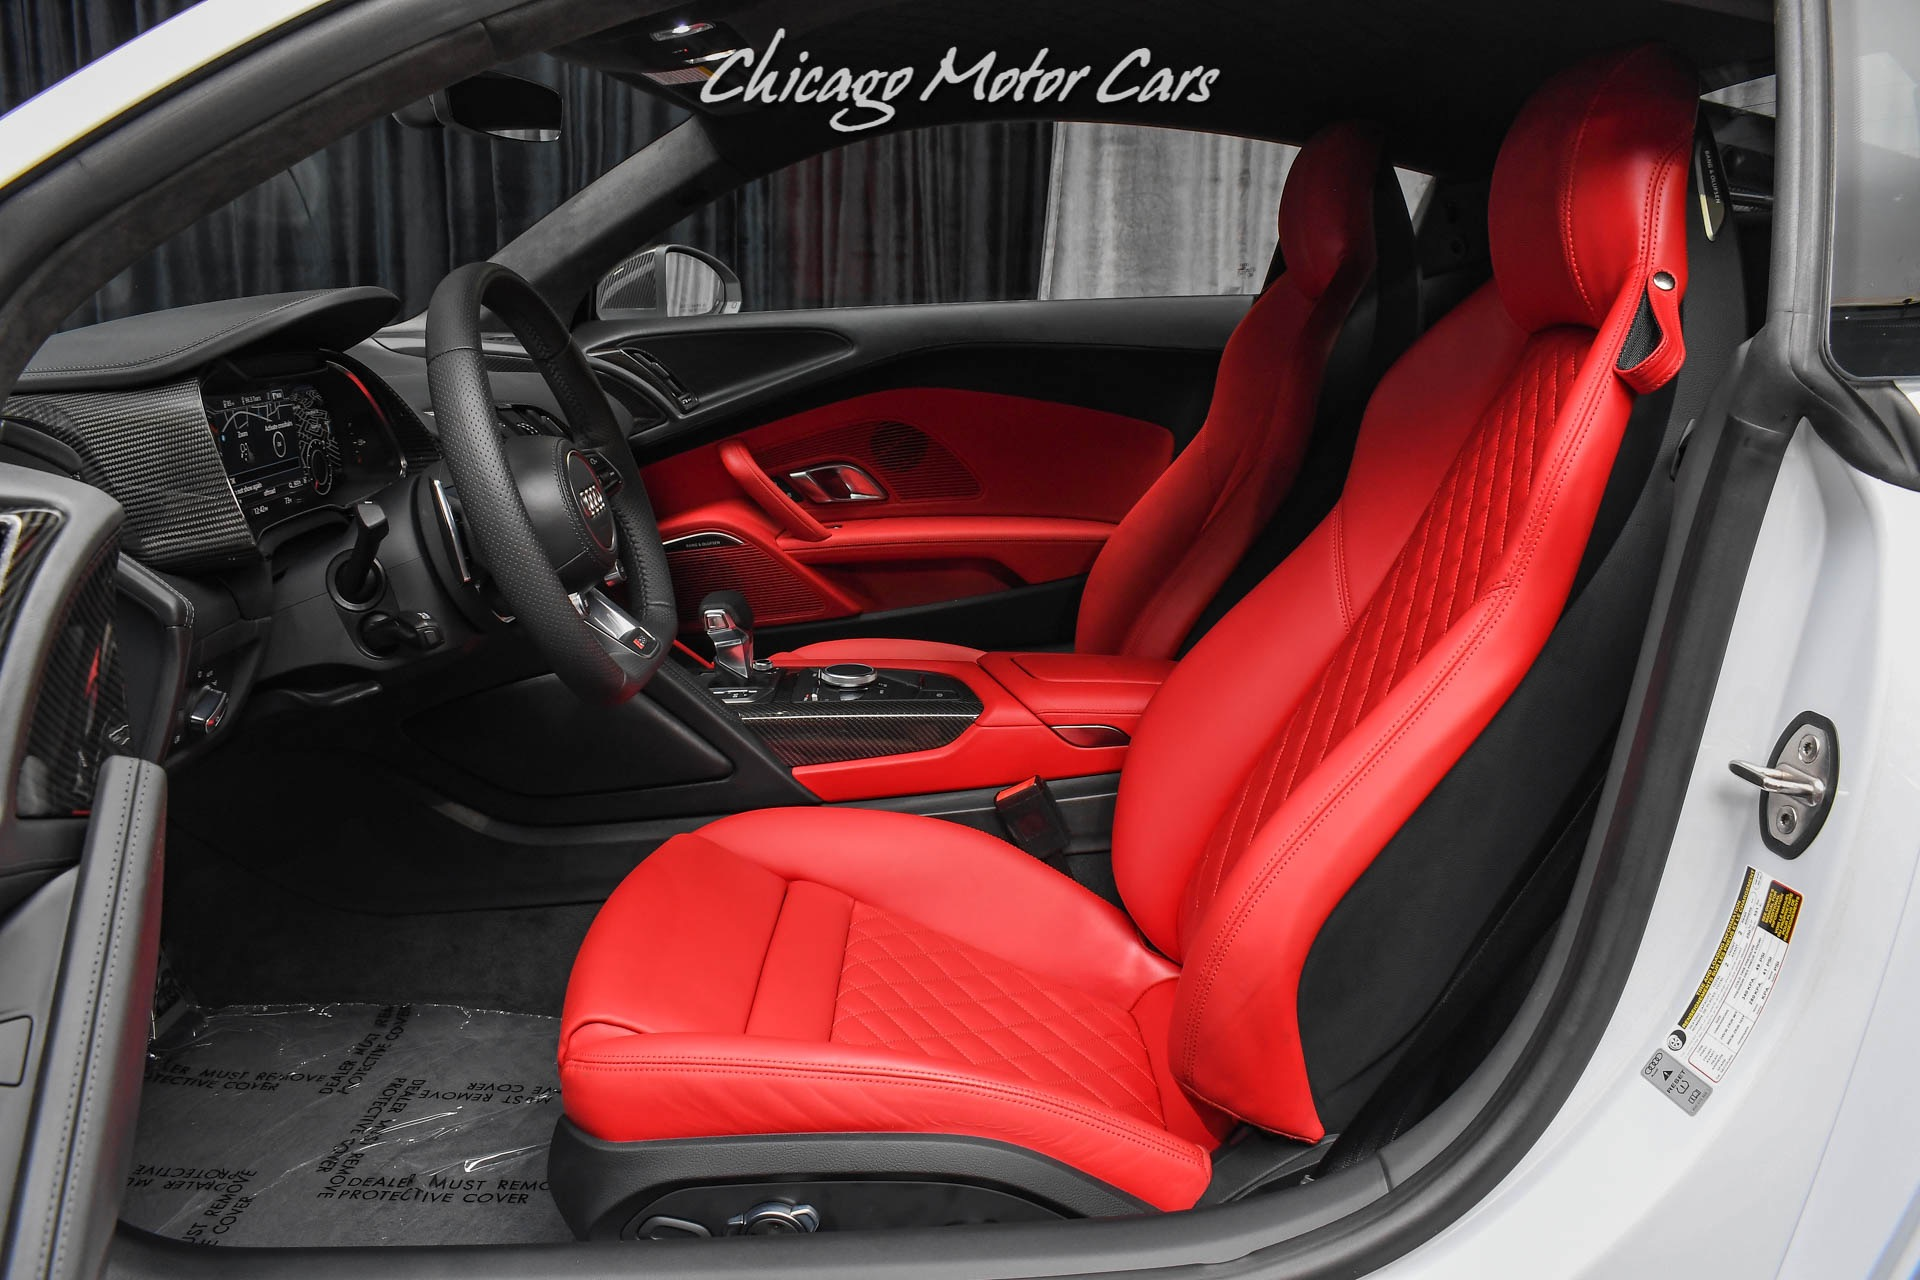 Used-2018-Audi-R8-52-Quattro-V10-Plus-Coupe-HOT-COLOR-COMBO-BANG---OLUFSEN-AUDIO-3K-MILES